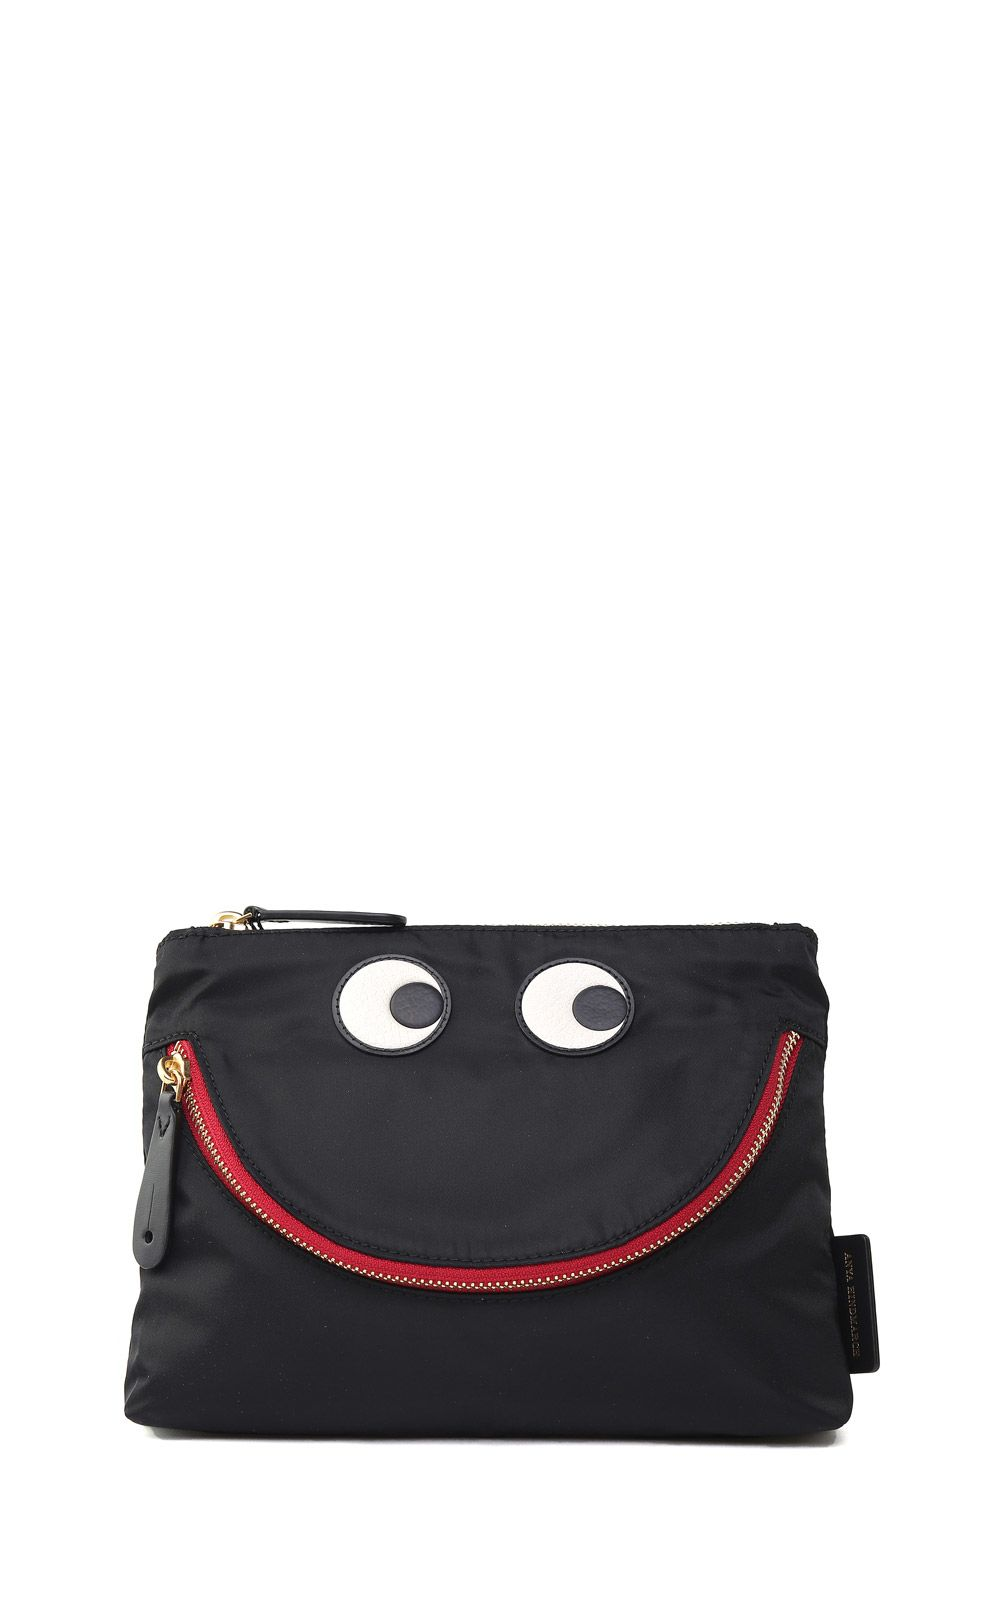 HAPPY EYES NYLON AND LEATHER POUCH